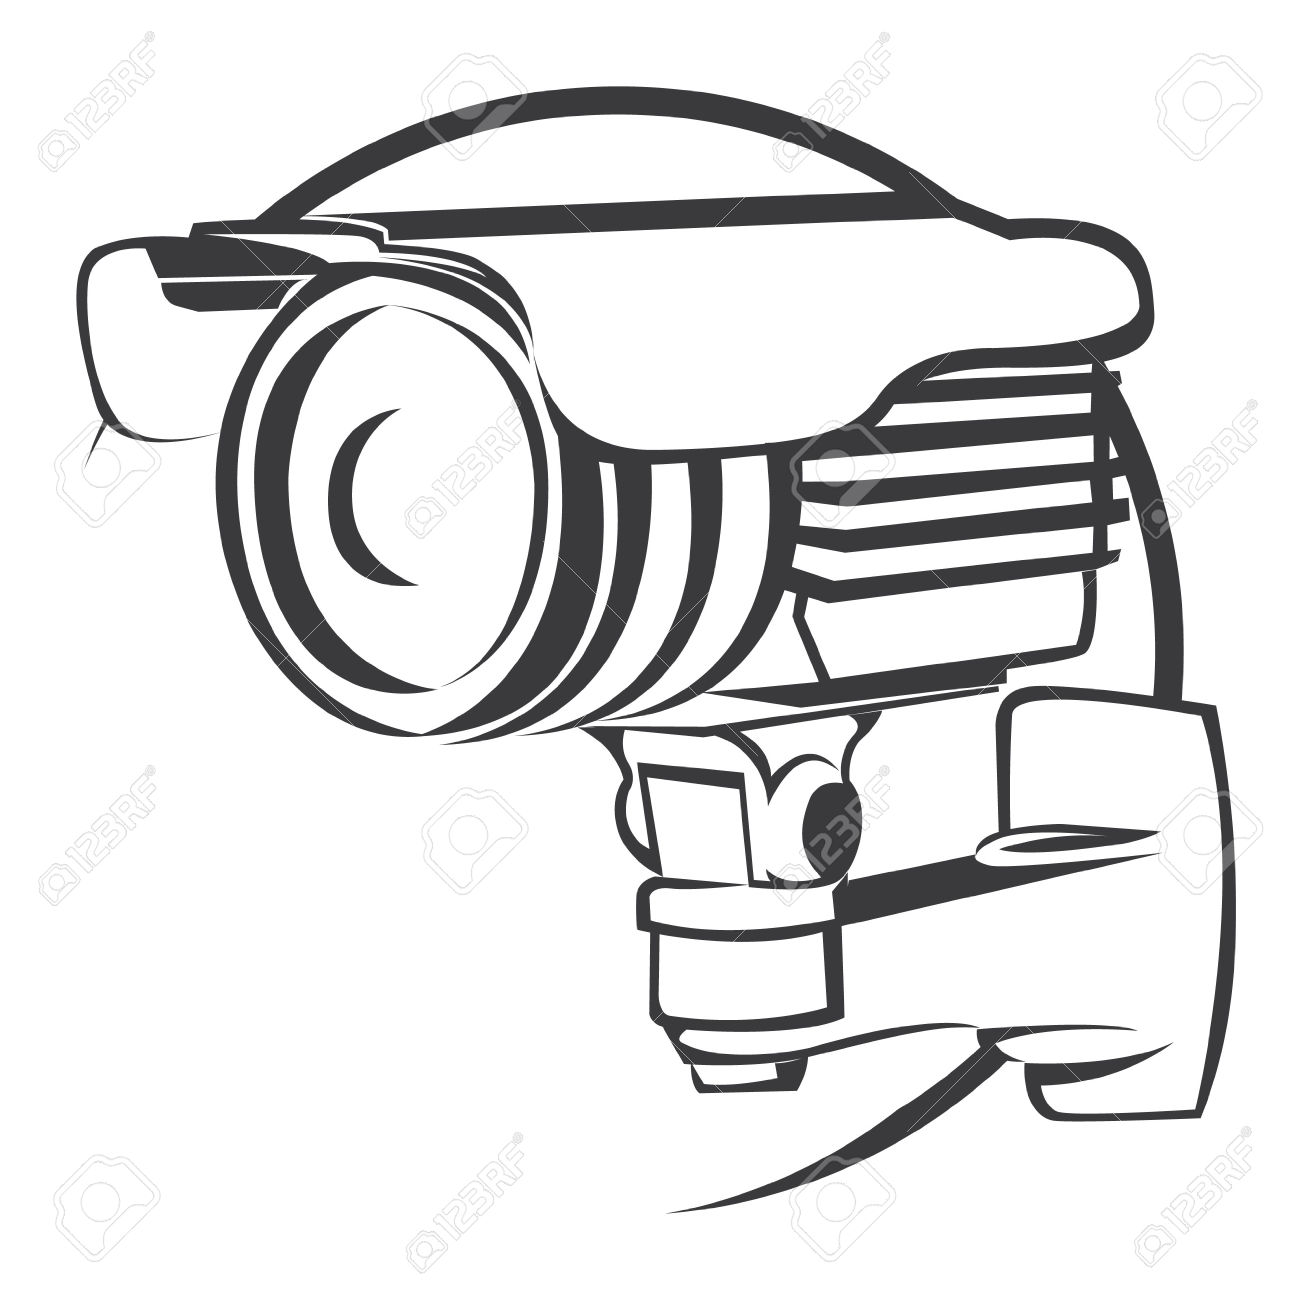 Security Camera Clipart | Free download best Security Camera ... for Camera Equipment Clipart  35fsj